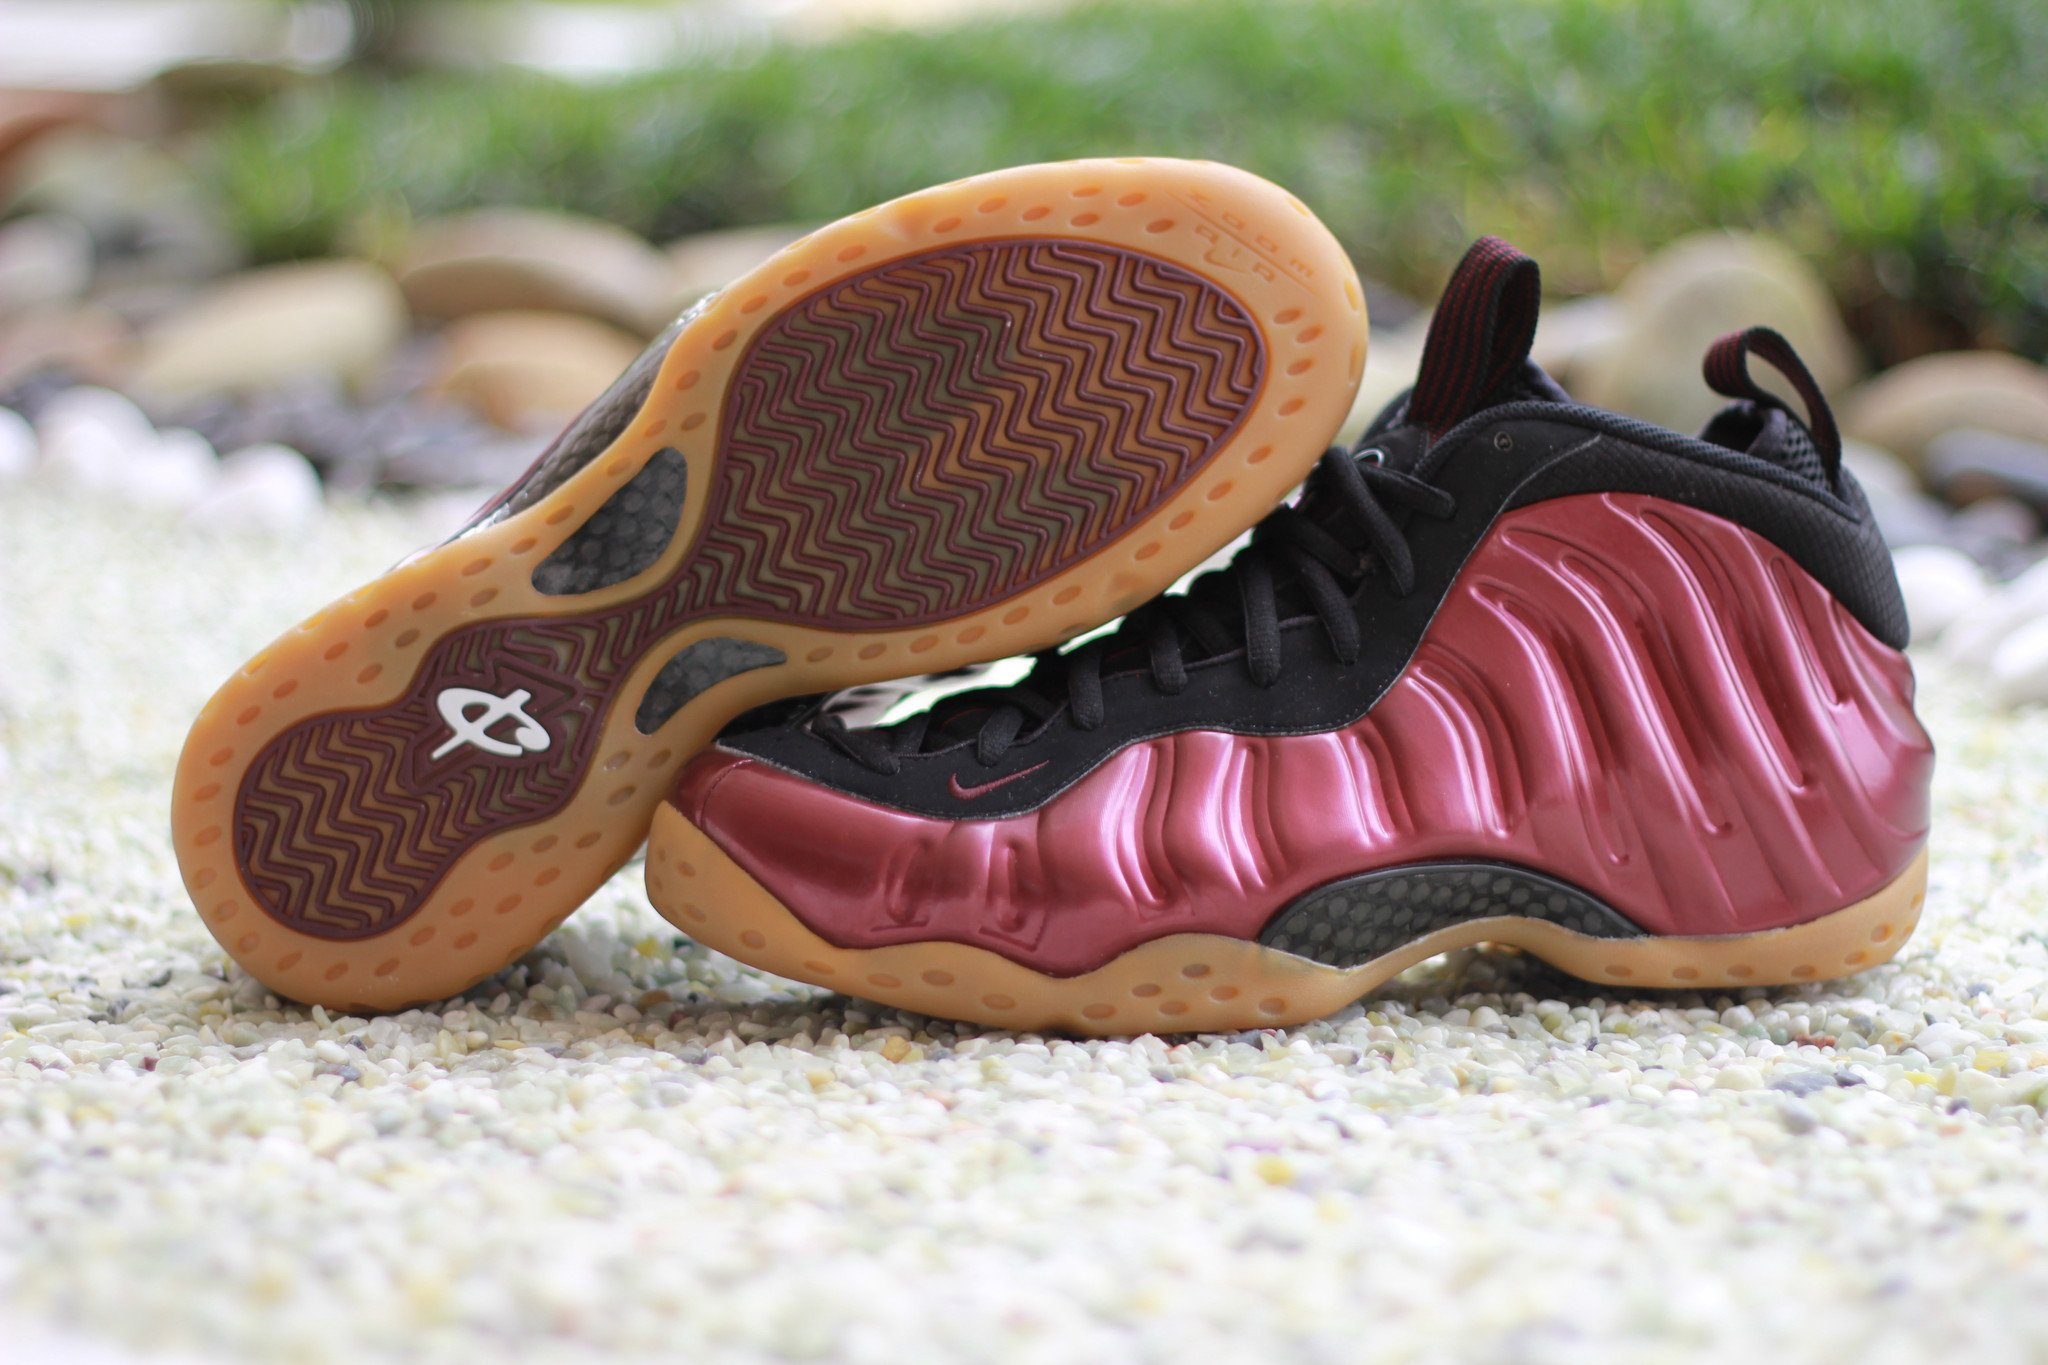 brand new 8afc6 fac00 Image via Stadium Goods   Copper Nike Air Foamposite One Front